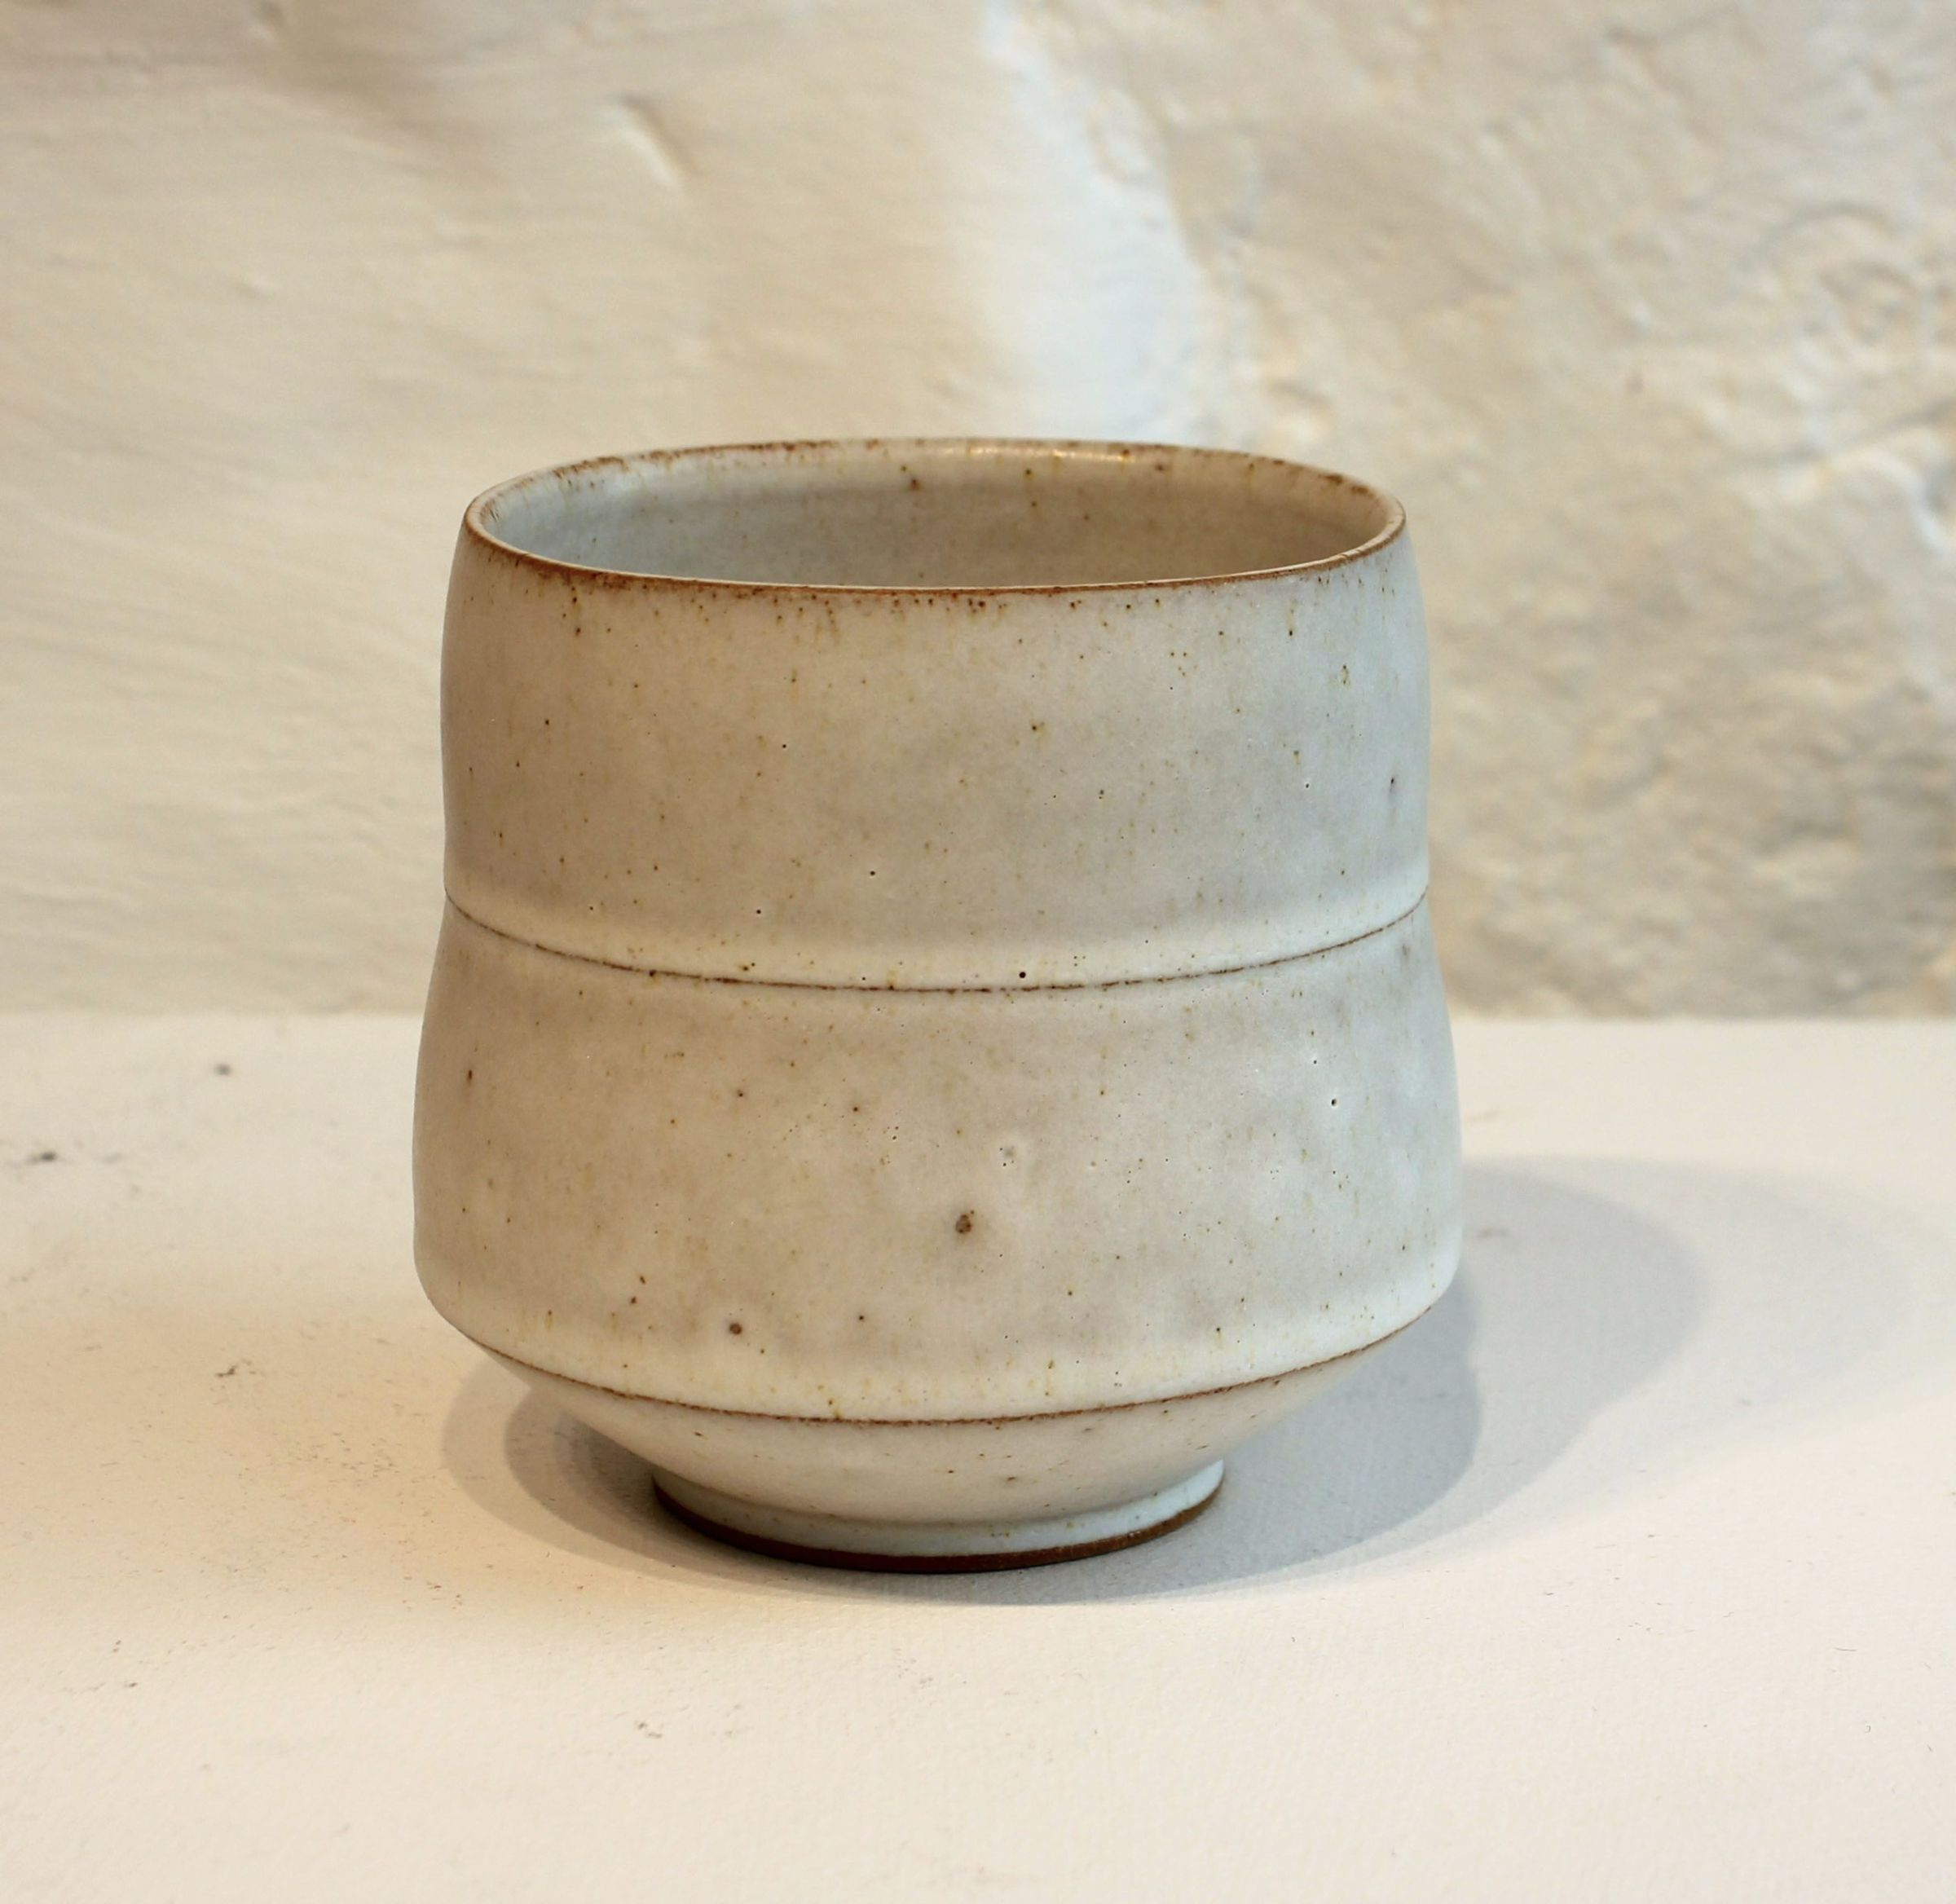 "<span class=""link fancybox-details-link""><a href=""/artists/33-sun-kim/works/5465-sun-kim-tea-bowl-2018/"">View Detail Page</a></span><div class=""artist""><strong>Sun Kim</strong></div> <div class=""title""><em>Tea Bowl</em>, 2018</div> <div class=""signed_and_dated"">Stamped by the artist</div> <div class=""medium"">Stoneware</div><div class=""copyright_line"">Copyright The Artist</div>"